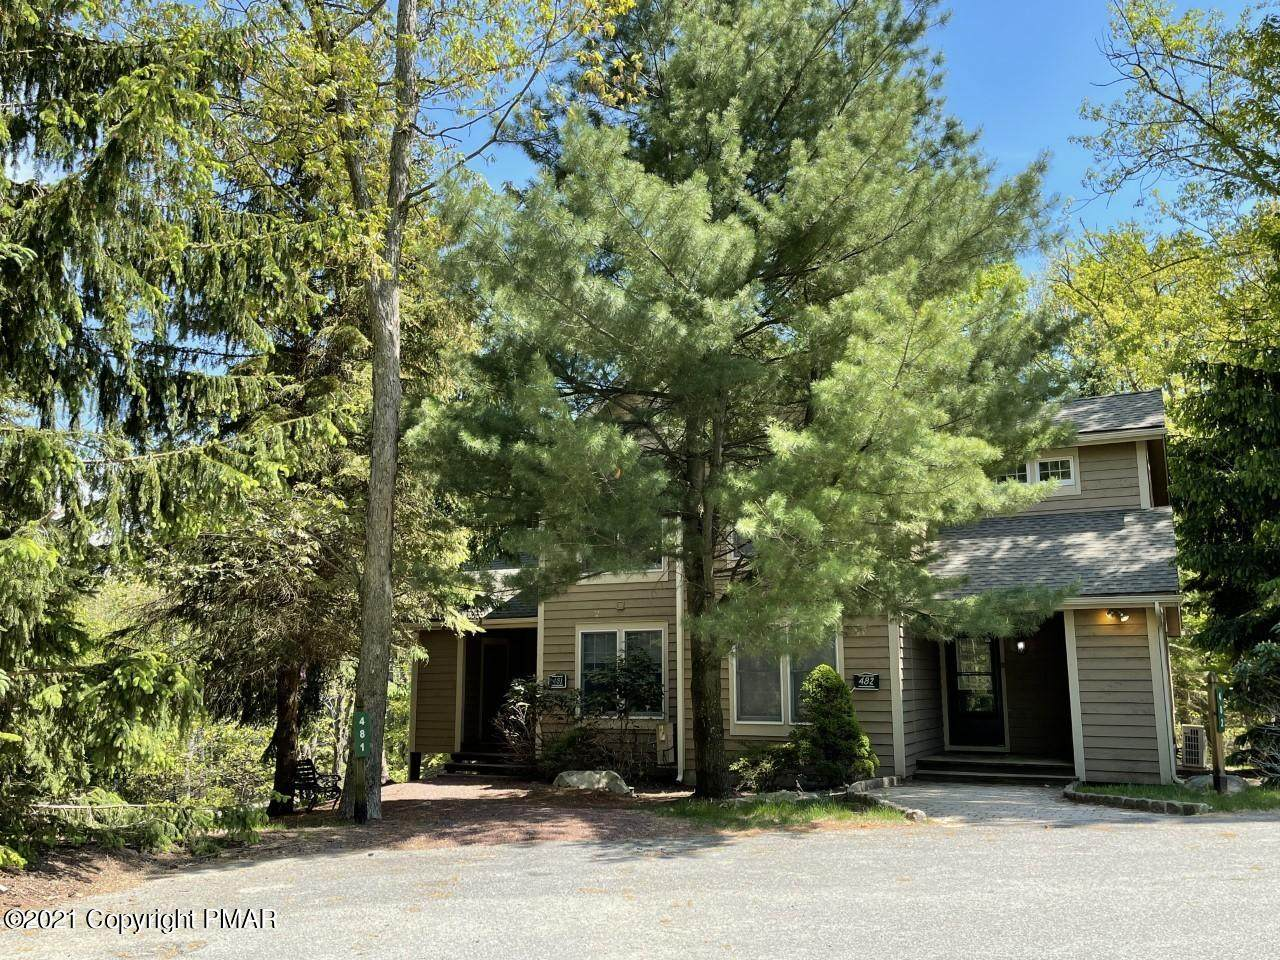 481 Spruce Dr - Photo 1